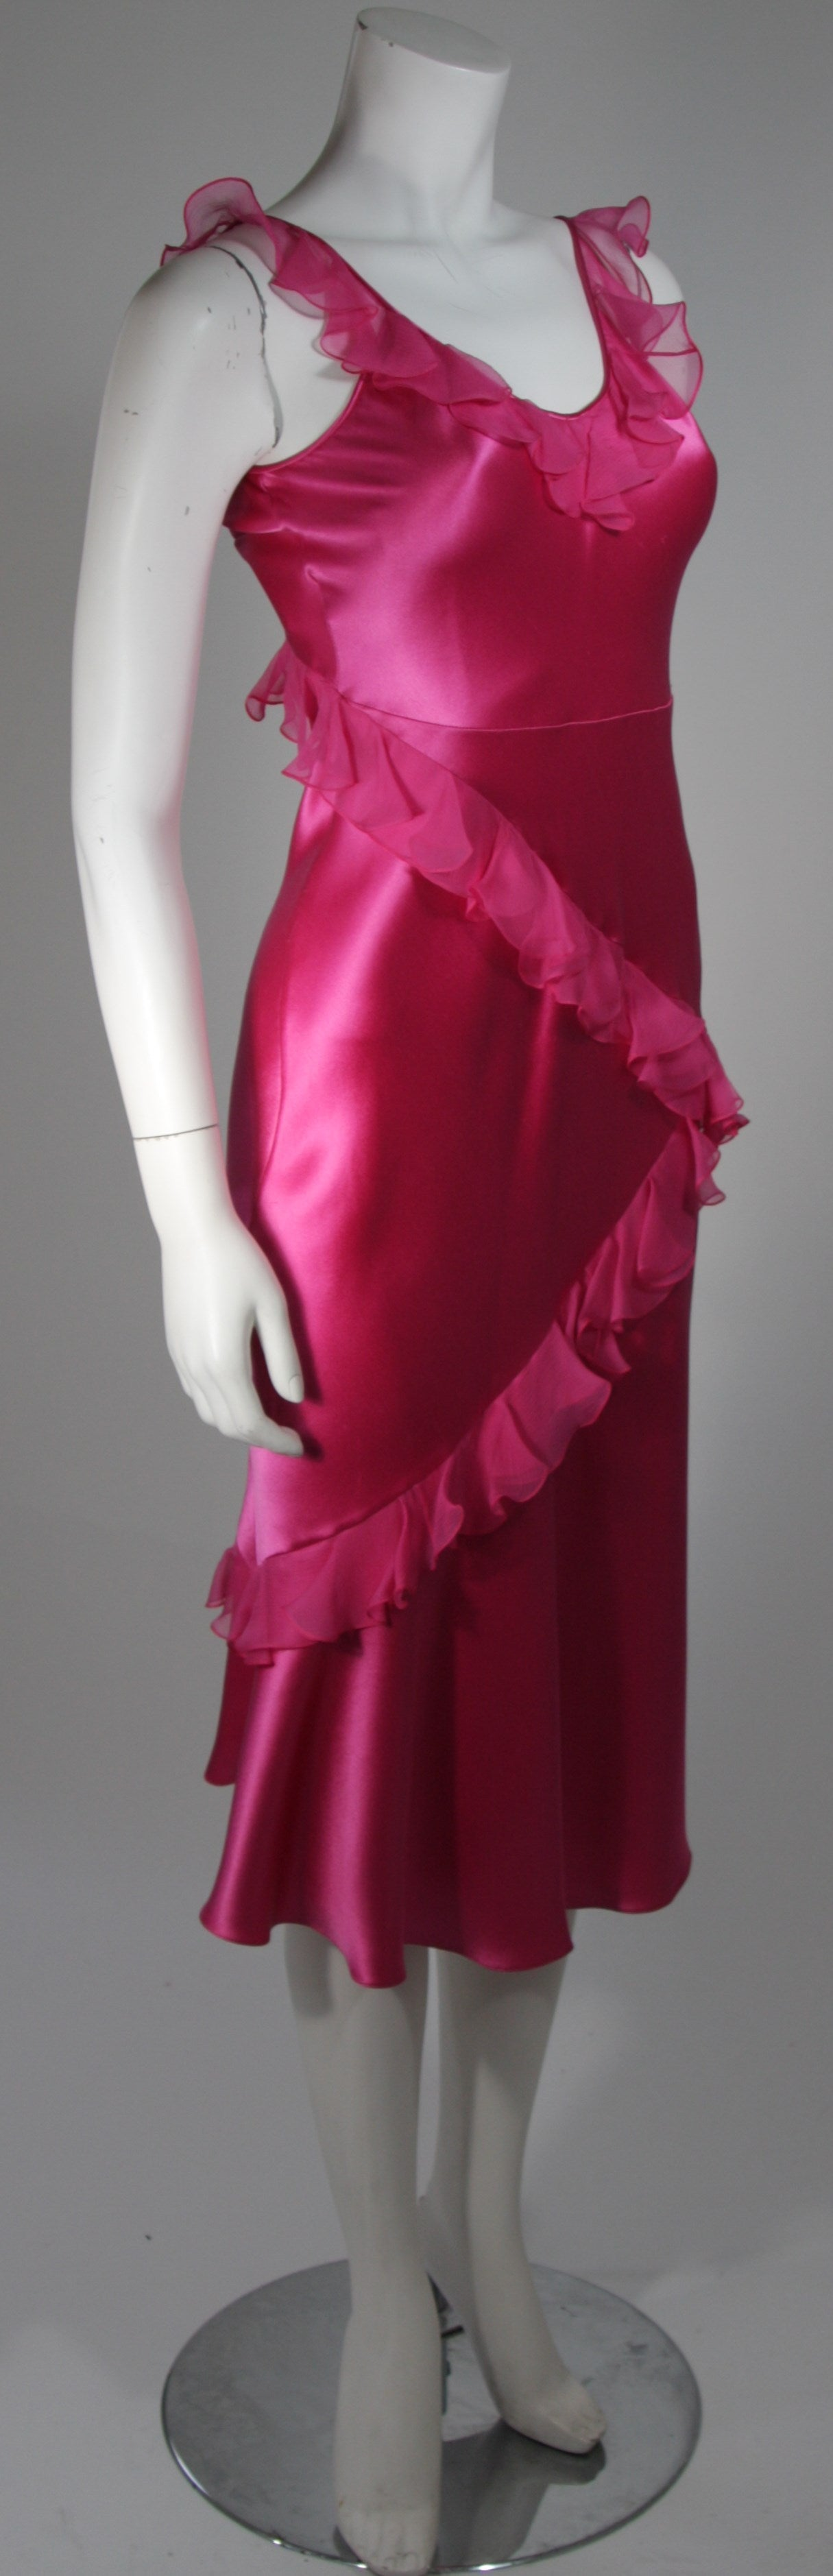 This Christian Dior slip style dress is composed of a vibrant pink silk and silk chiffon combination. The dress is accented with cascading chiffon ruffles. In excellent condition. Great design. Made in France. 